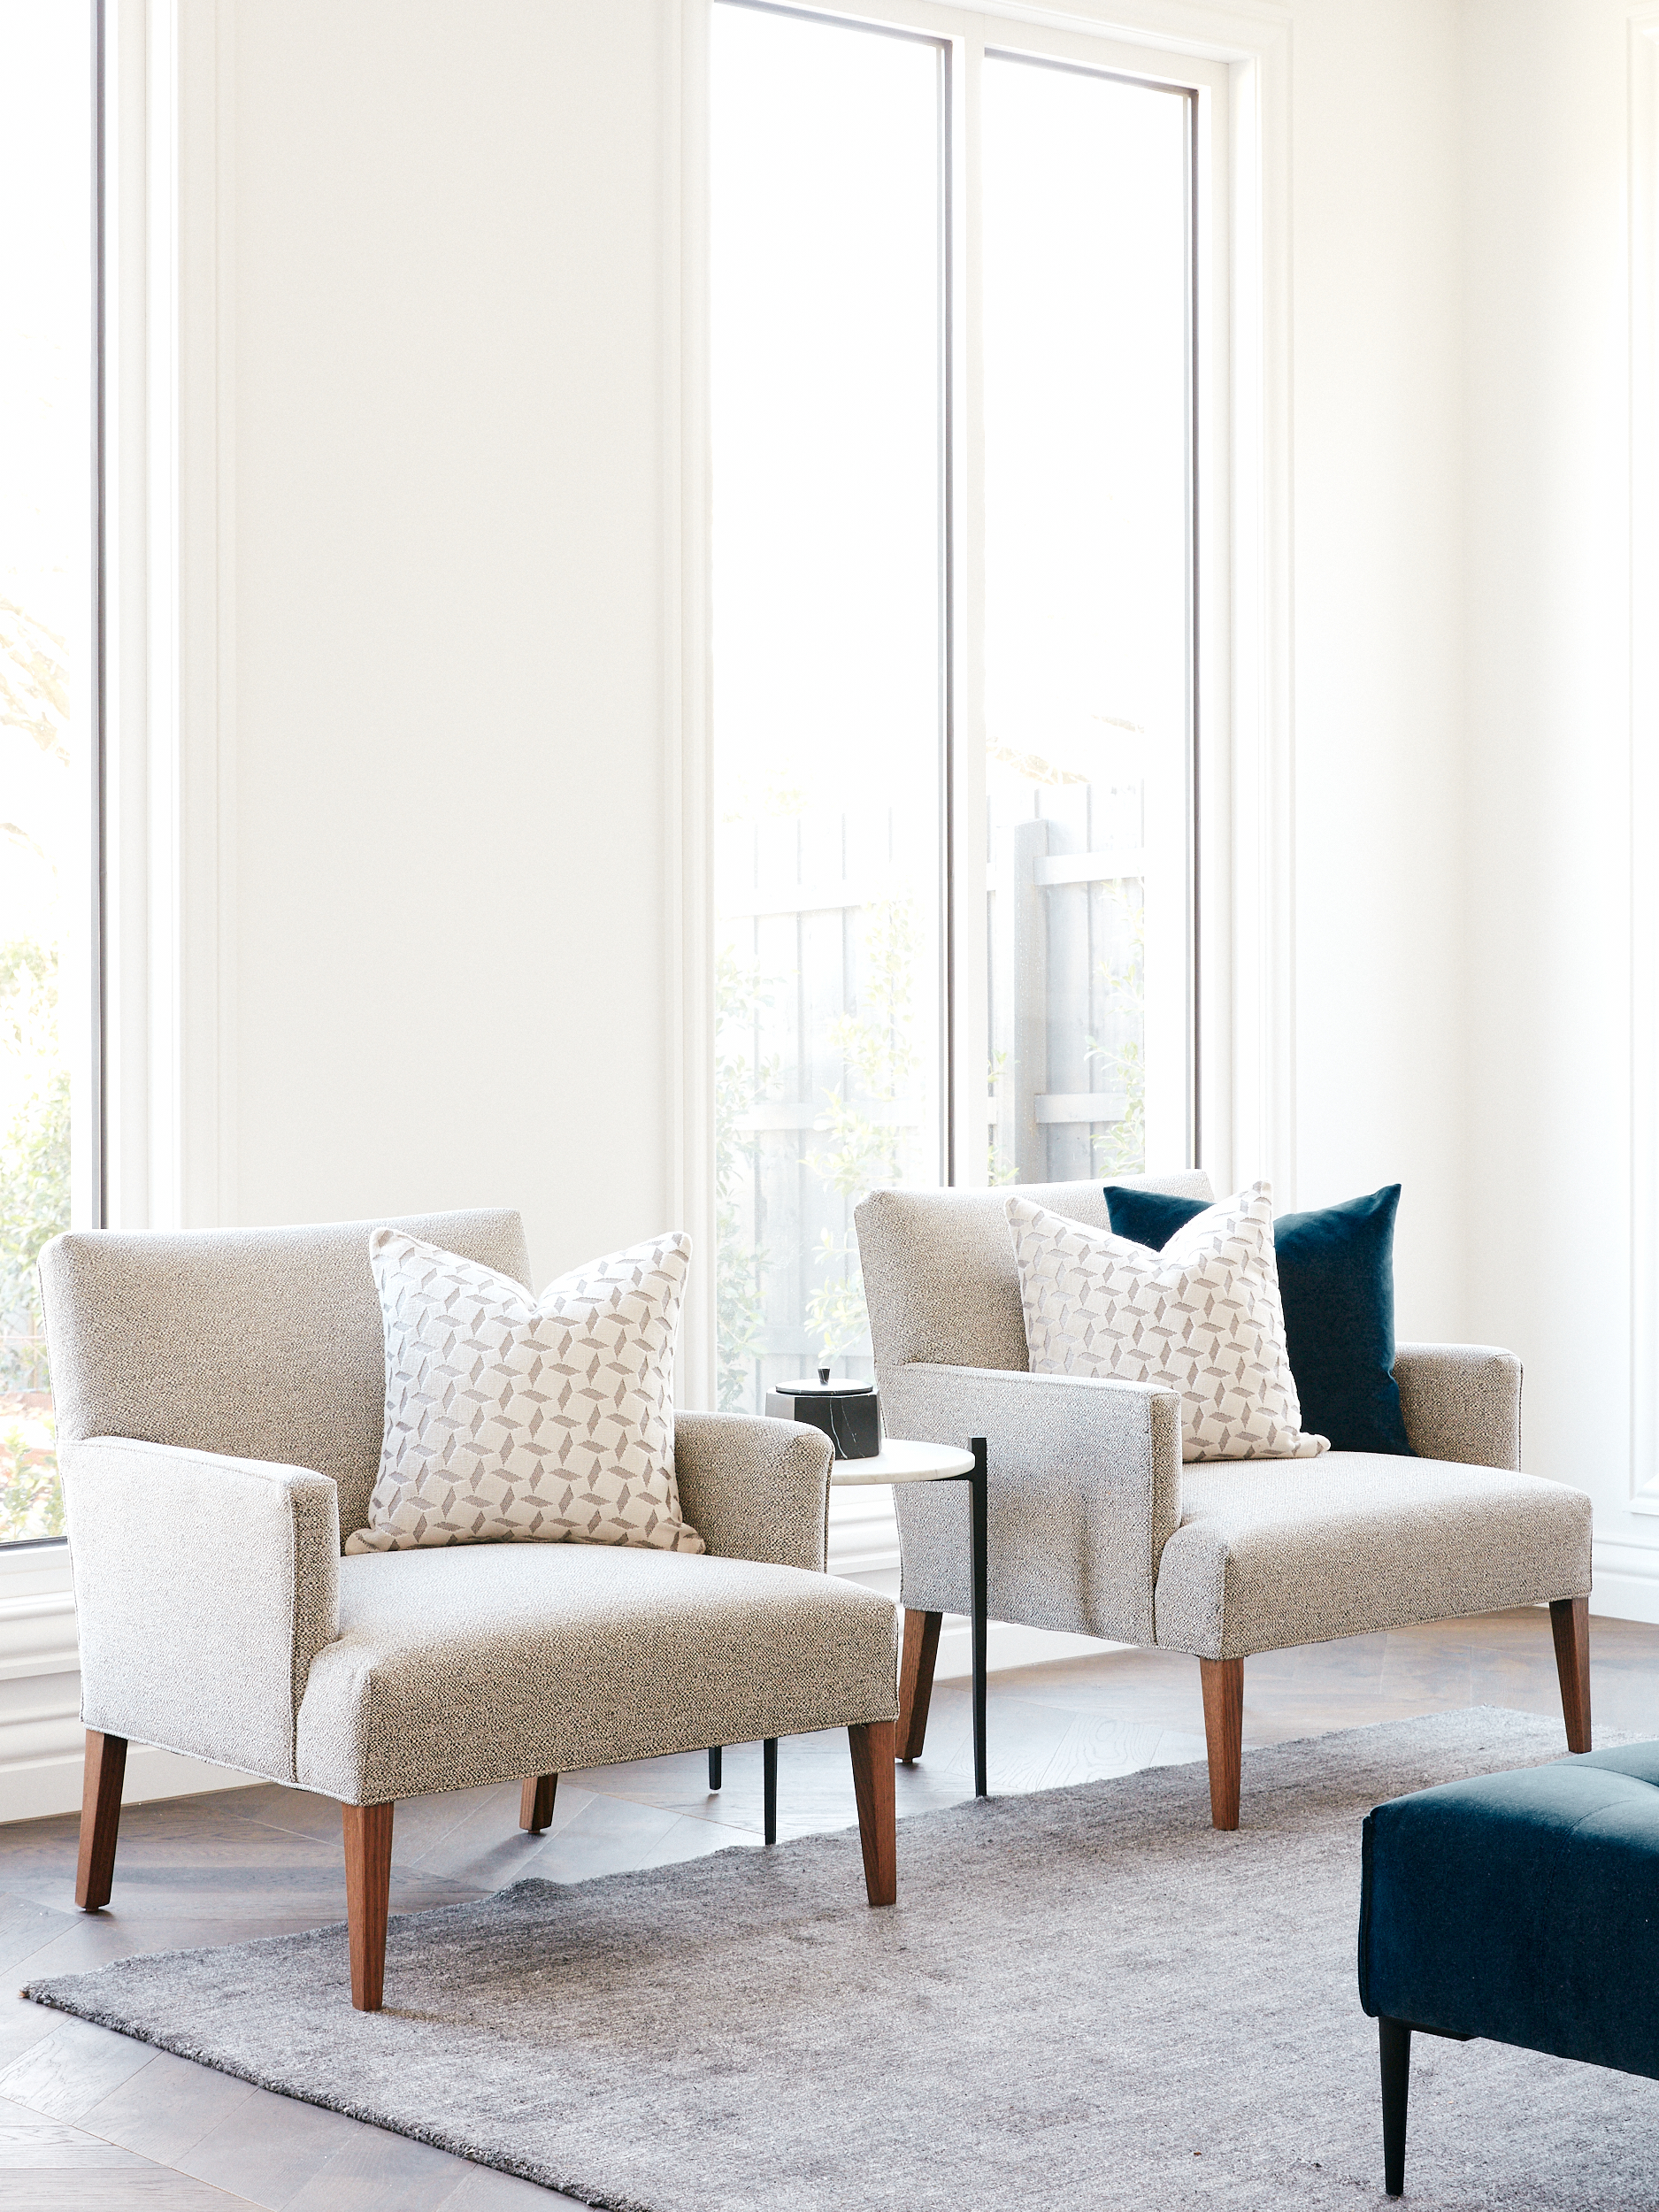 Arthur G Armchairs Courang Formal Living Property Styling